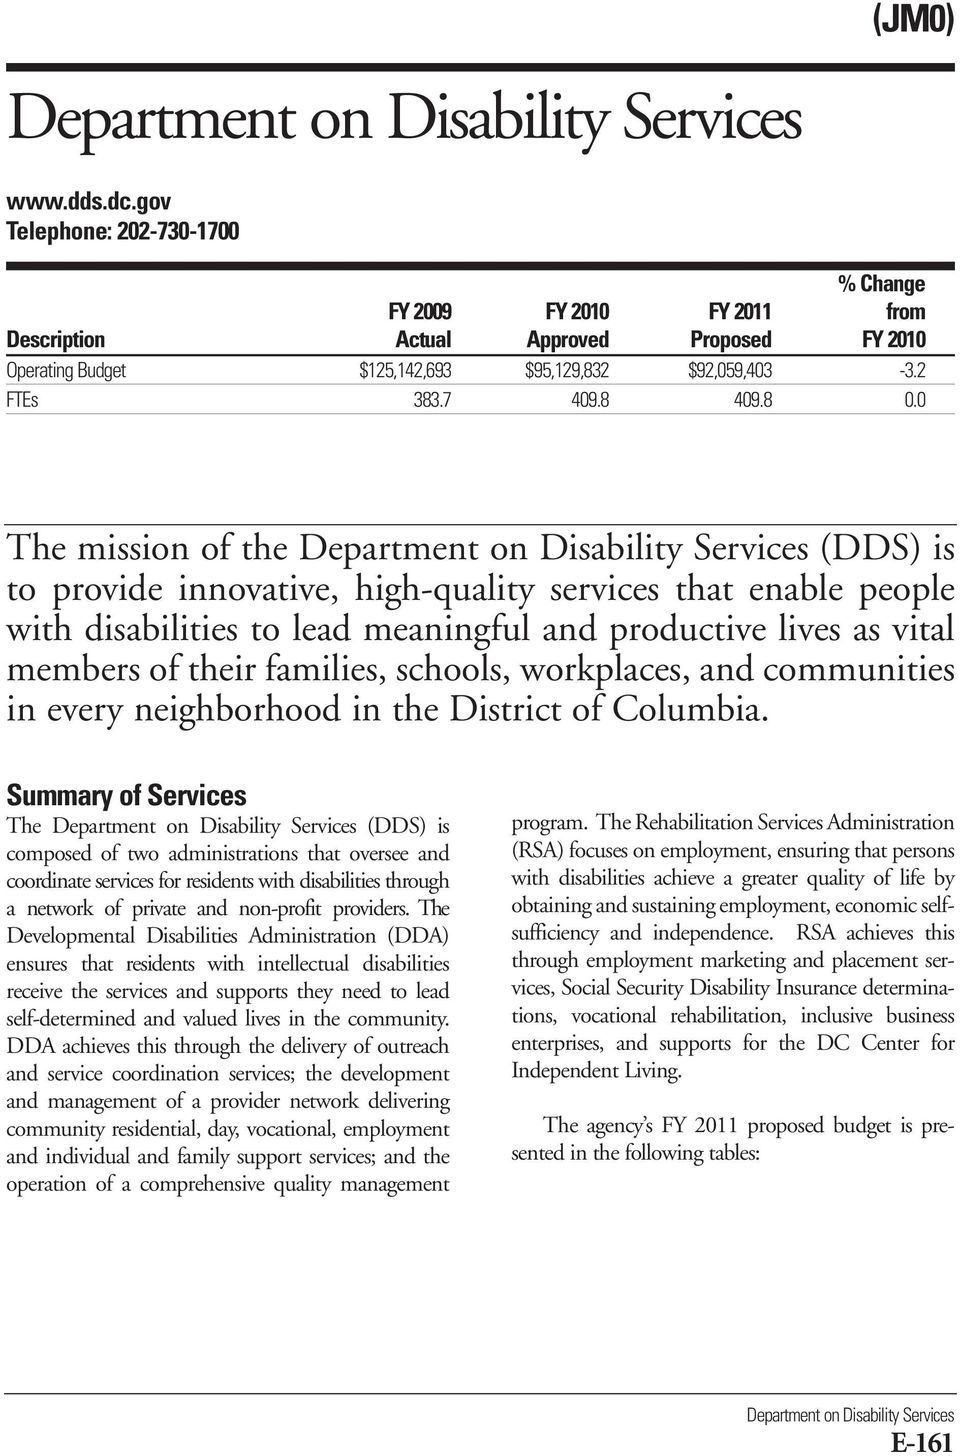 0 The mission of the Department on Disability Services (DDS) is to provide innovative, high-quality services that enable people with disabilities to lead meaningful and productive lives as vital